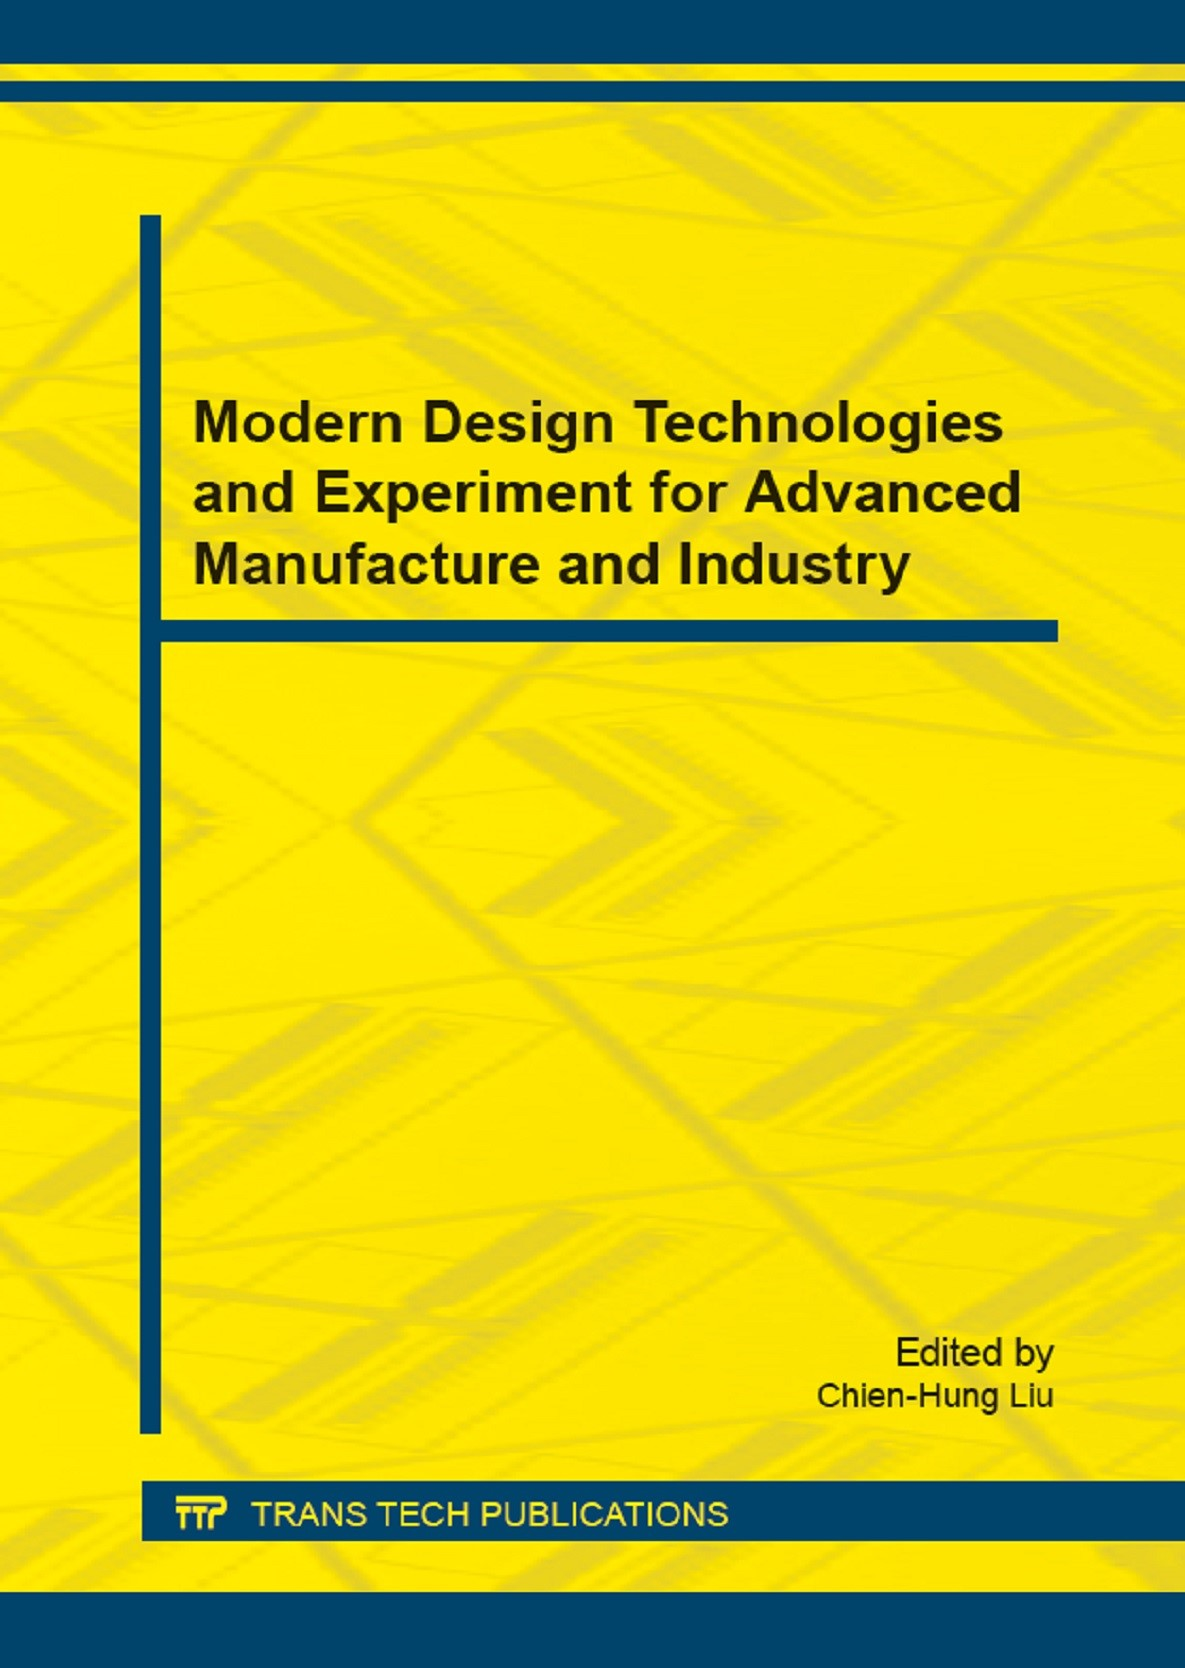 Modern Design Technologies and Experiment for Advanced Manufacture and Industry | Liu, 2015 | Buch (Cover)